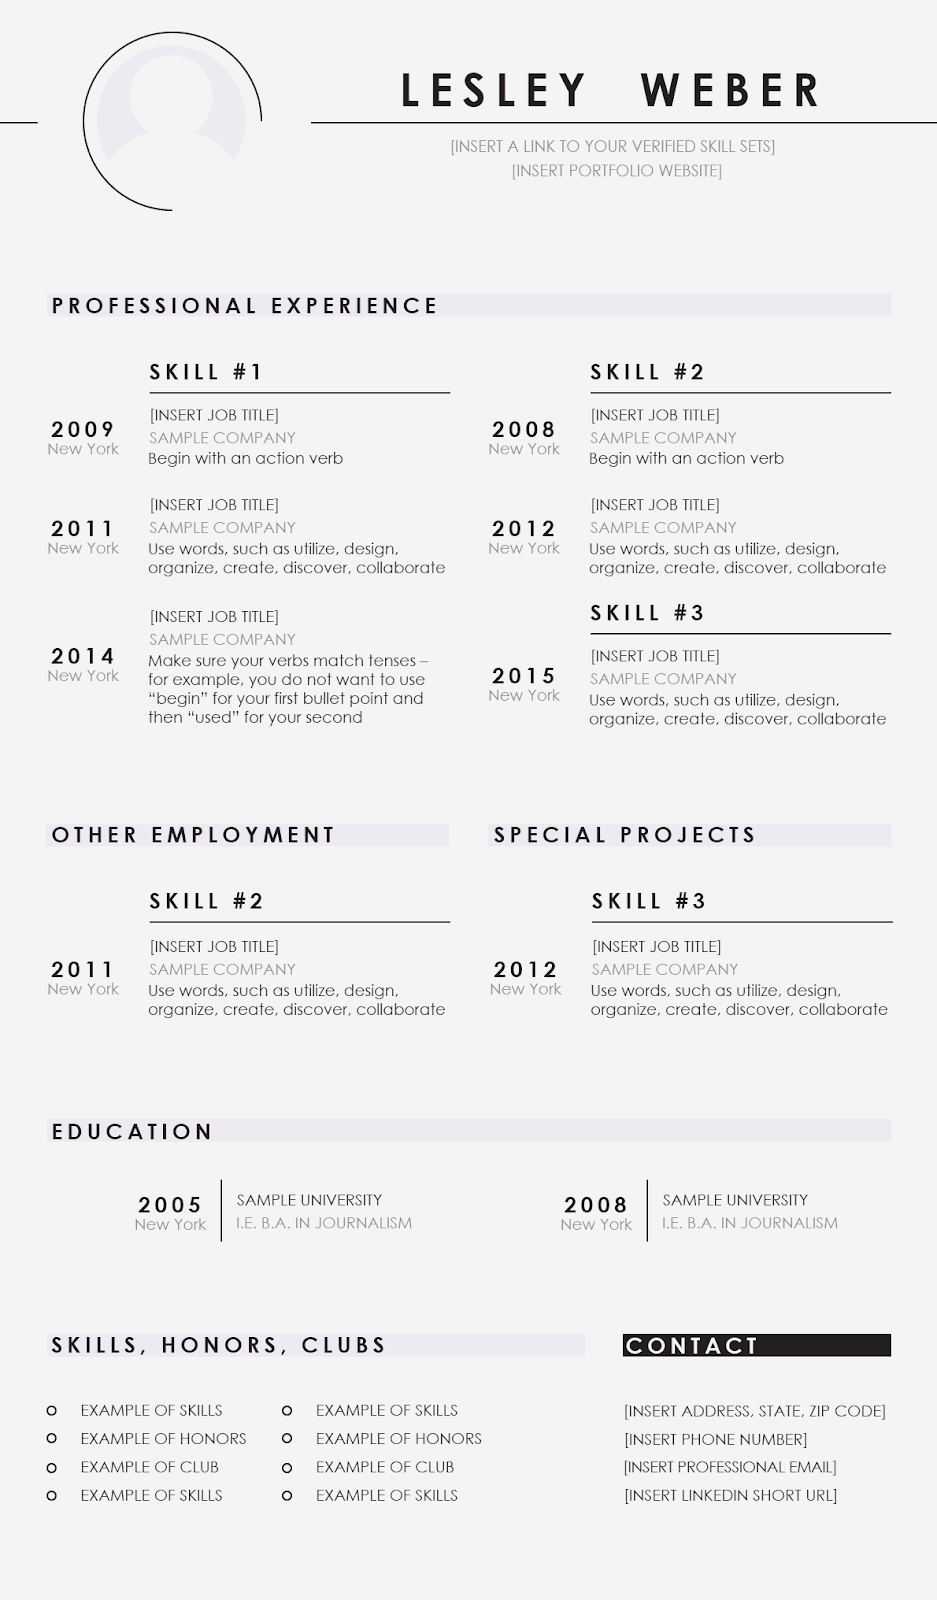 Free Psd Resume Templates To Help Yours Stand Out  Goskills